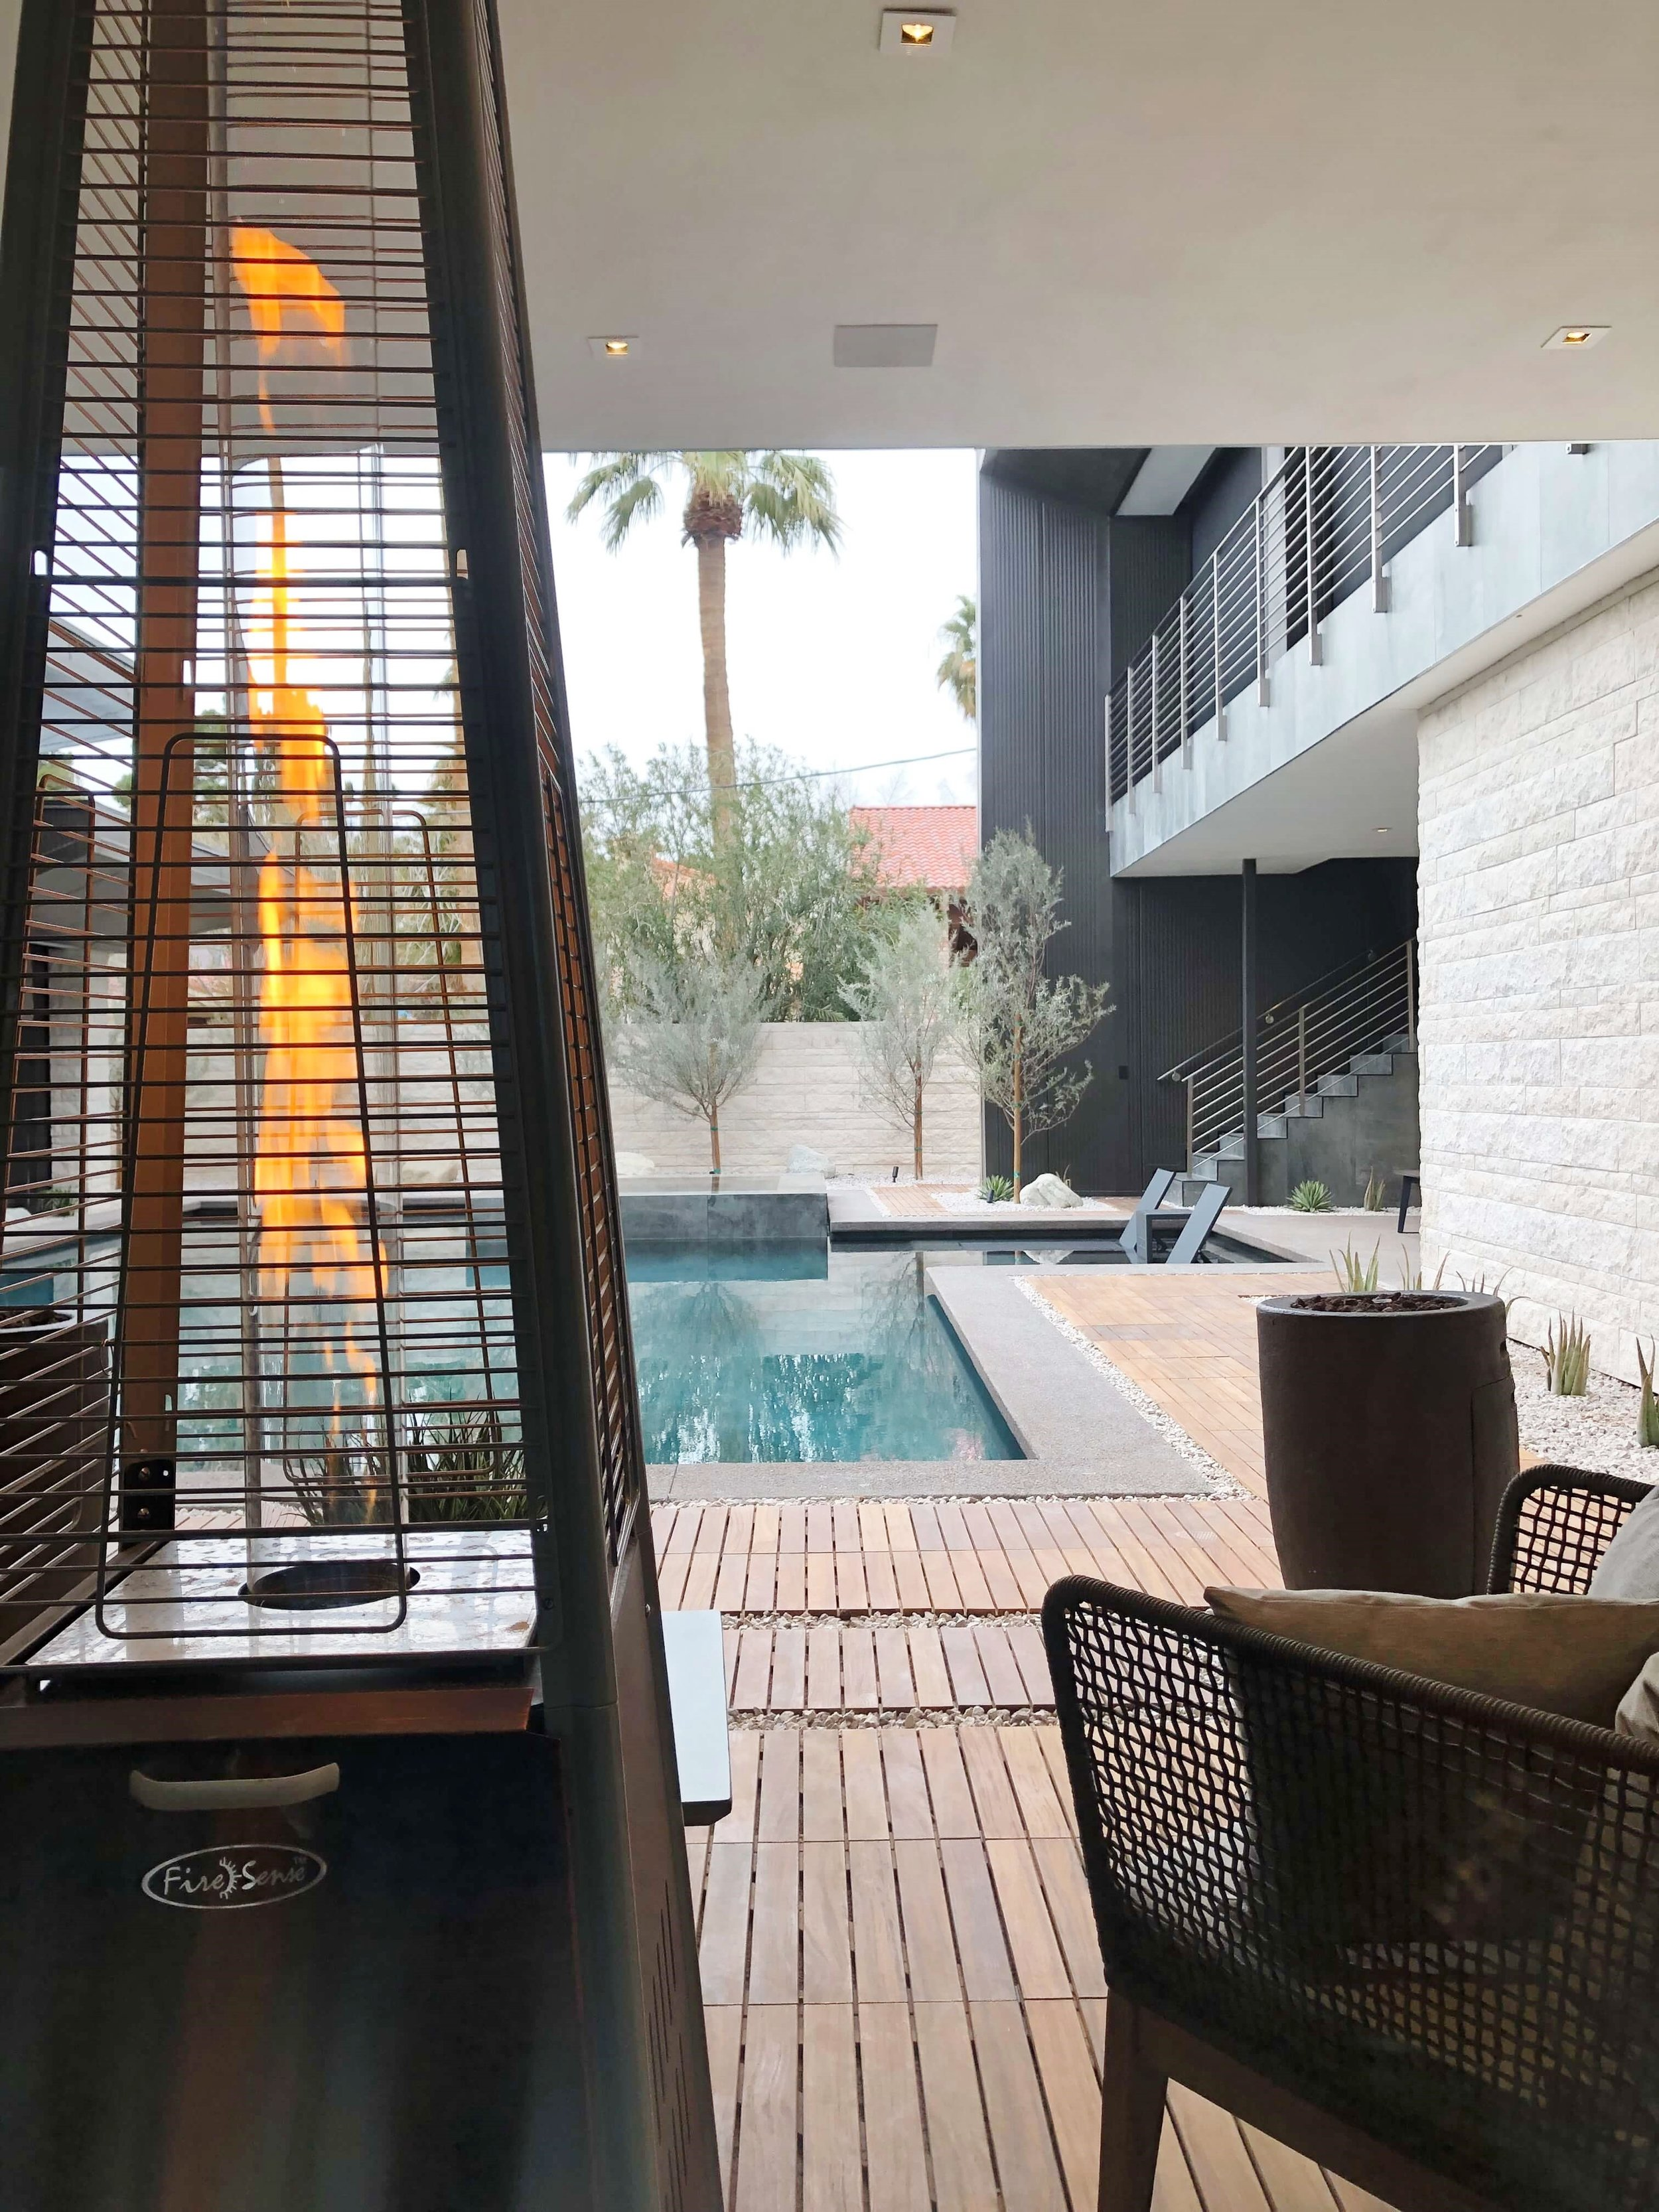 View from the mudroom/laundry area behind the kitchen to the pool courtyard in The New American Remodel 2019. #hometour #patio #contemporaryhome #pool